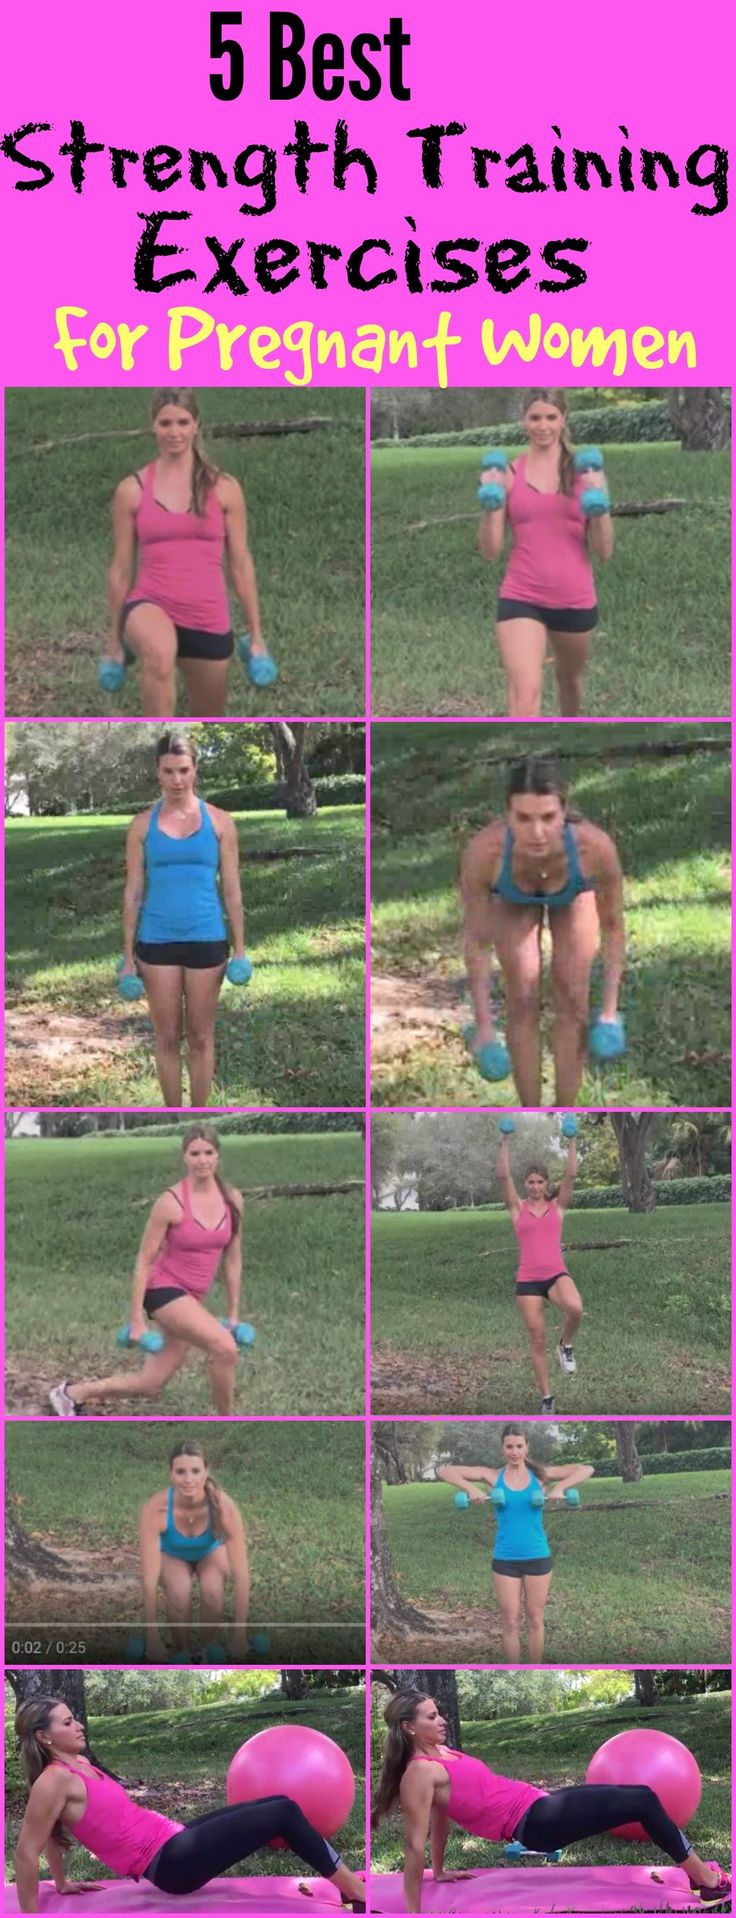 5 Best Strength Training Exercises for Pregnant Women. These pregnancy exercises put together are the best for helping gain less weight and have a fit pregnancy.